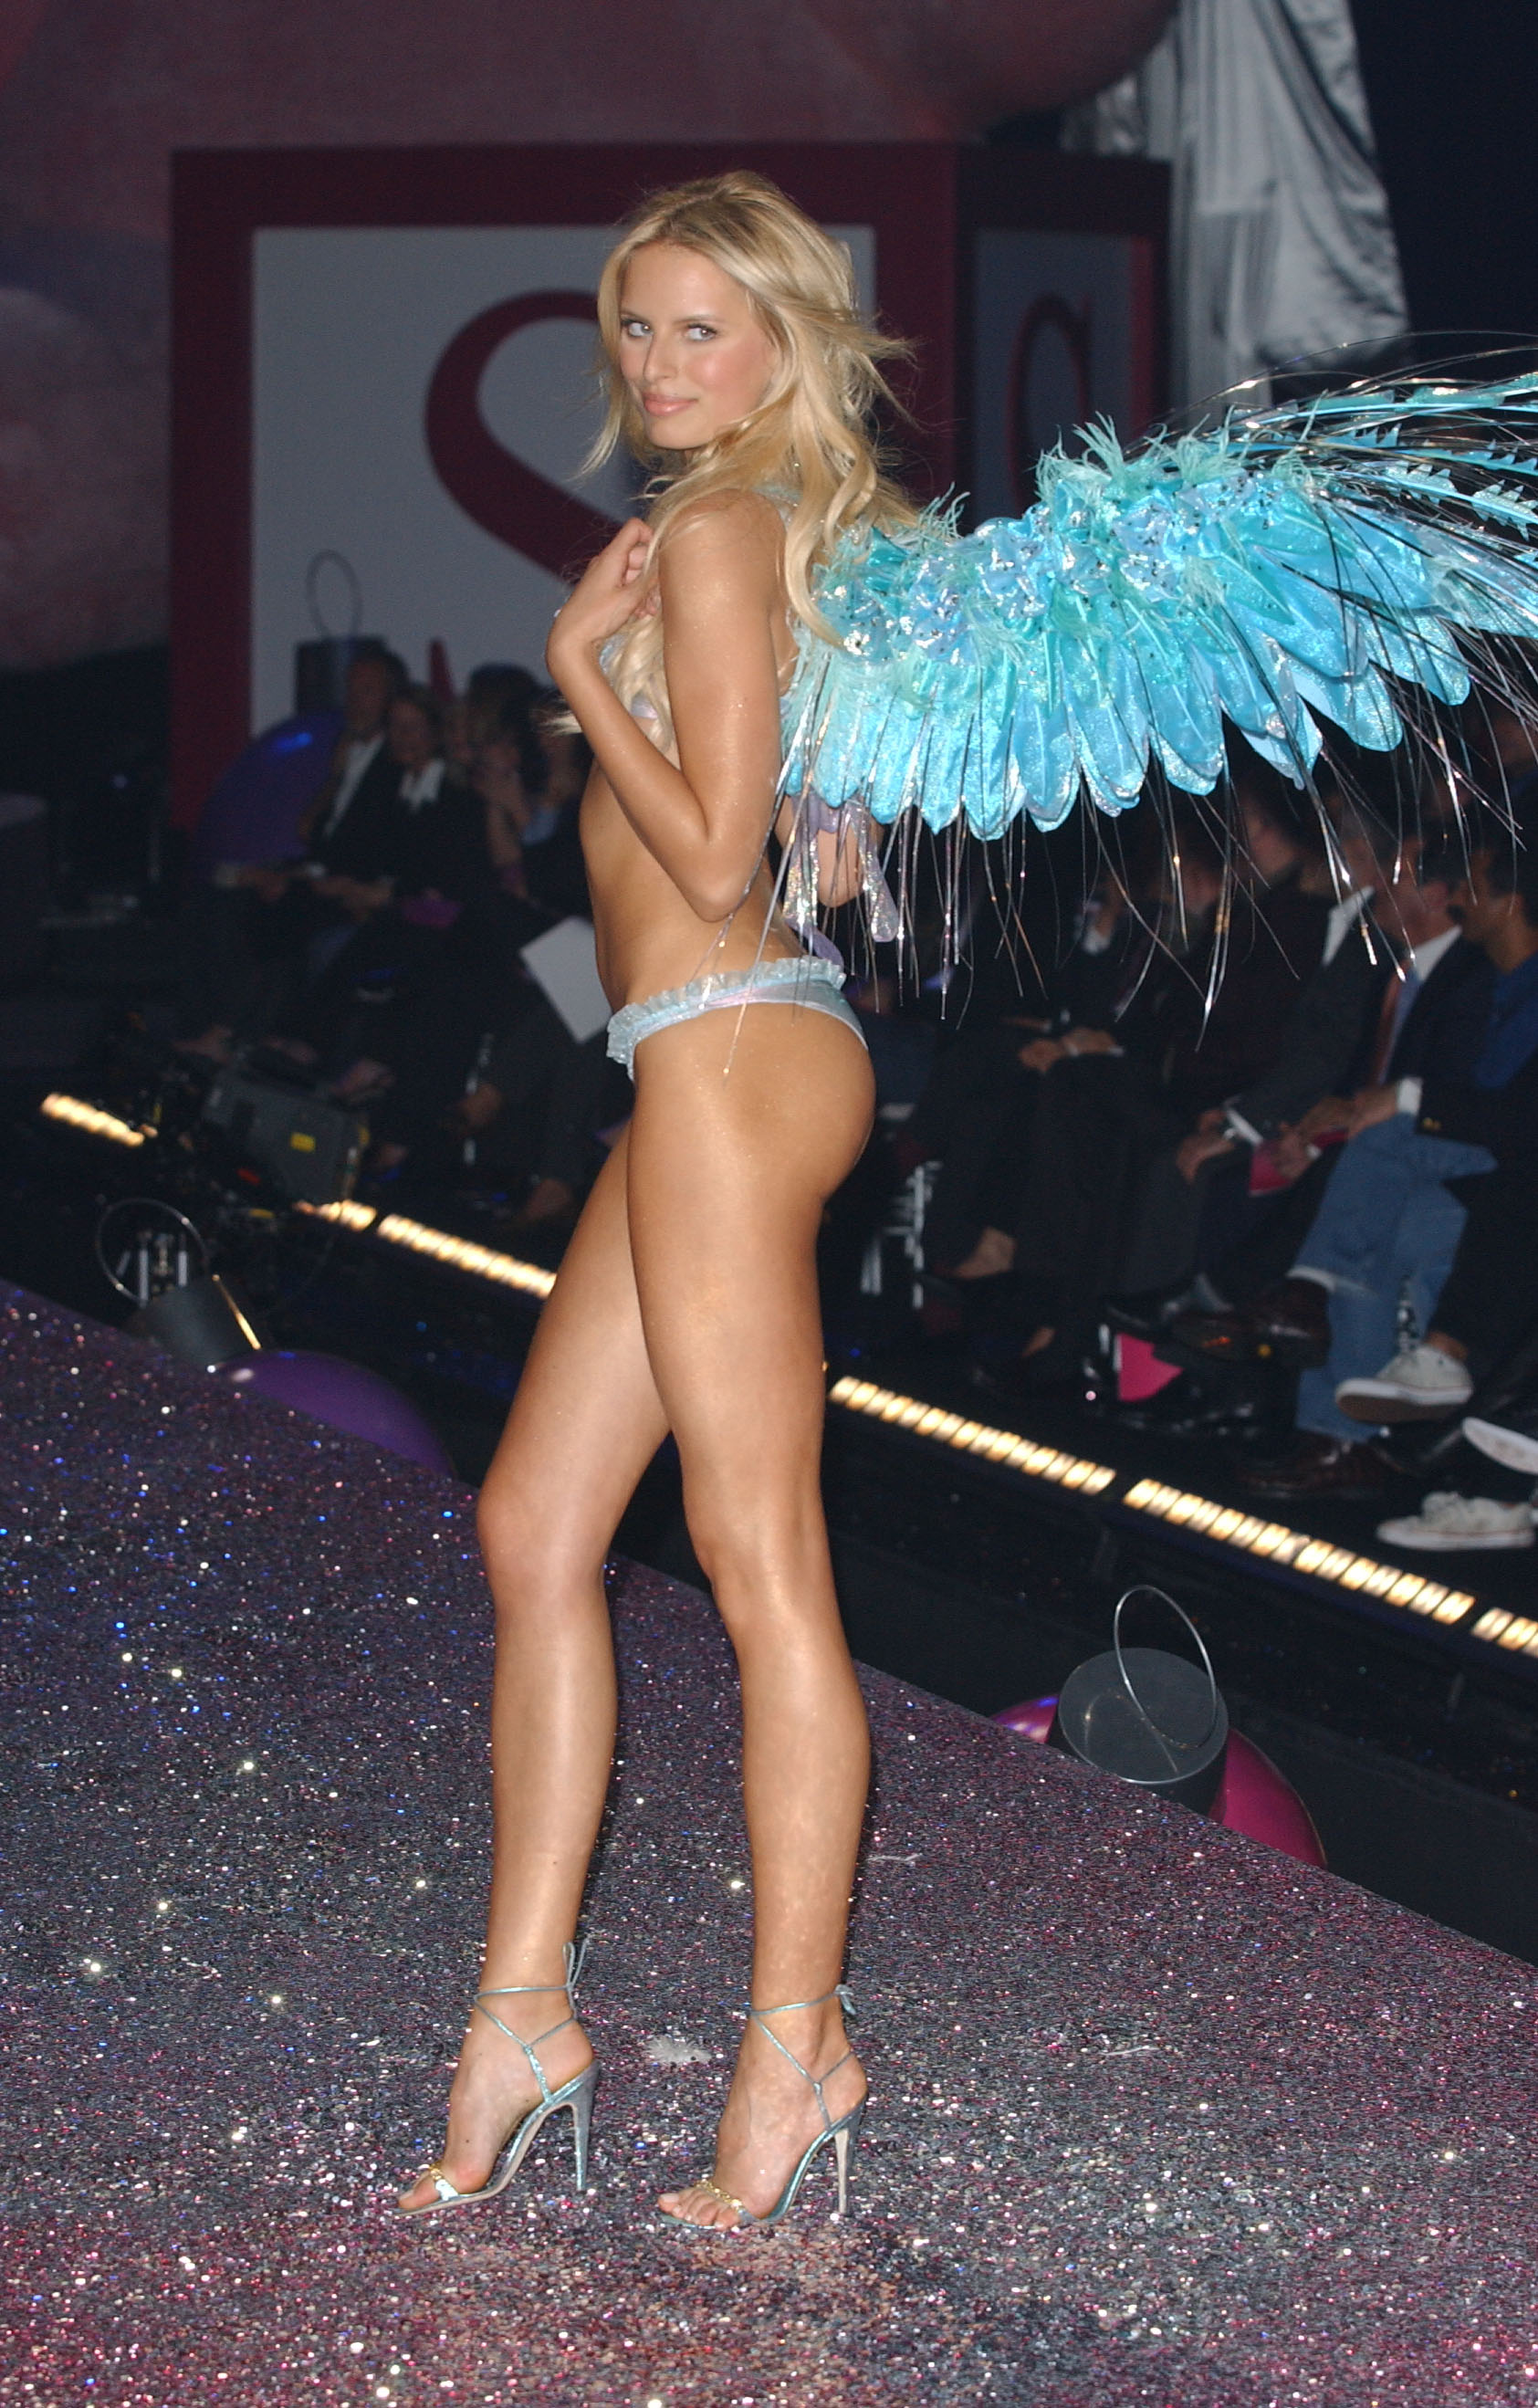 23284_celebrity_city_Victoria_Secret_Fashion_Show_34_123_352lo.jpg